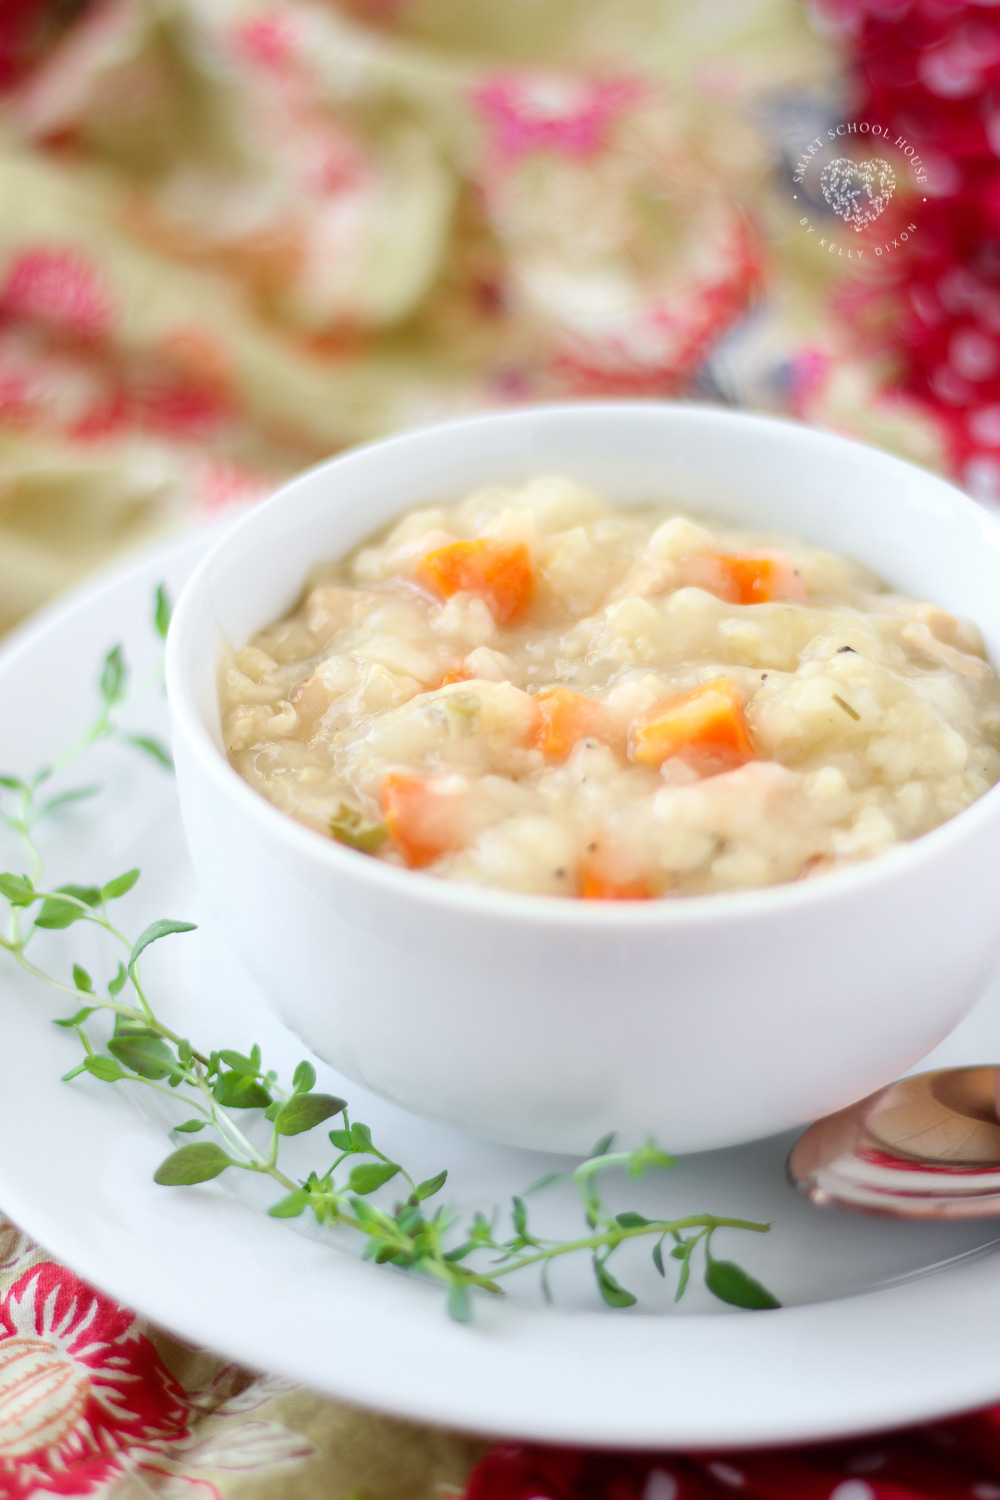 This Creamy Crock Pot Chicken and Rice Soup is a hearty, healthy easy soup recipe that's perfect for cold nights! Loaded with vegetables, lean chicken and rice. This chicken and rice soup is a family favorite! It's healthy, easy to make and kid friendly.#soup #recipe #cooking #dinner #healthy #healthyrecipe #chicken #slowcooker #crockpot